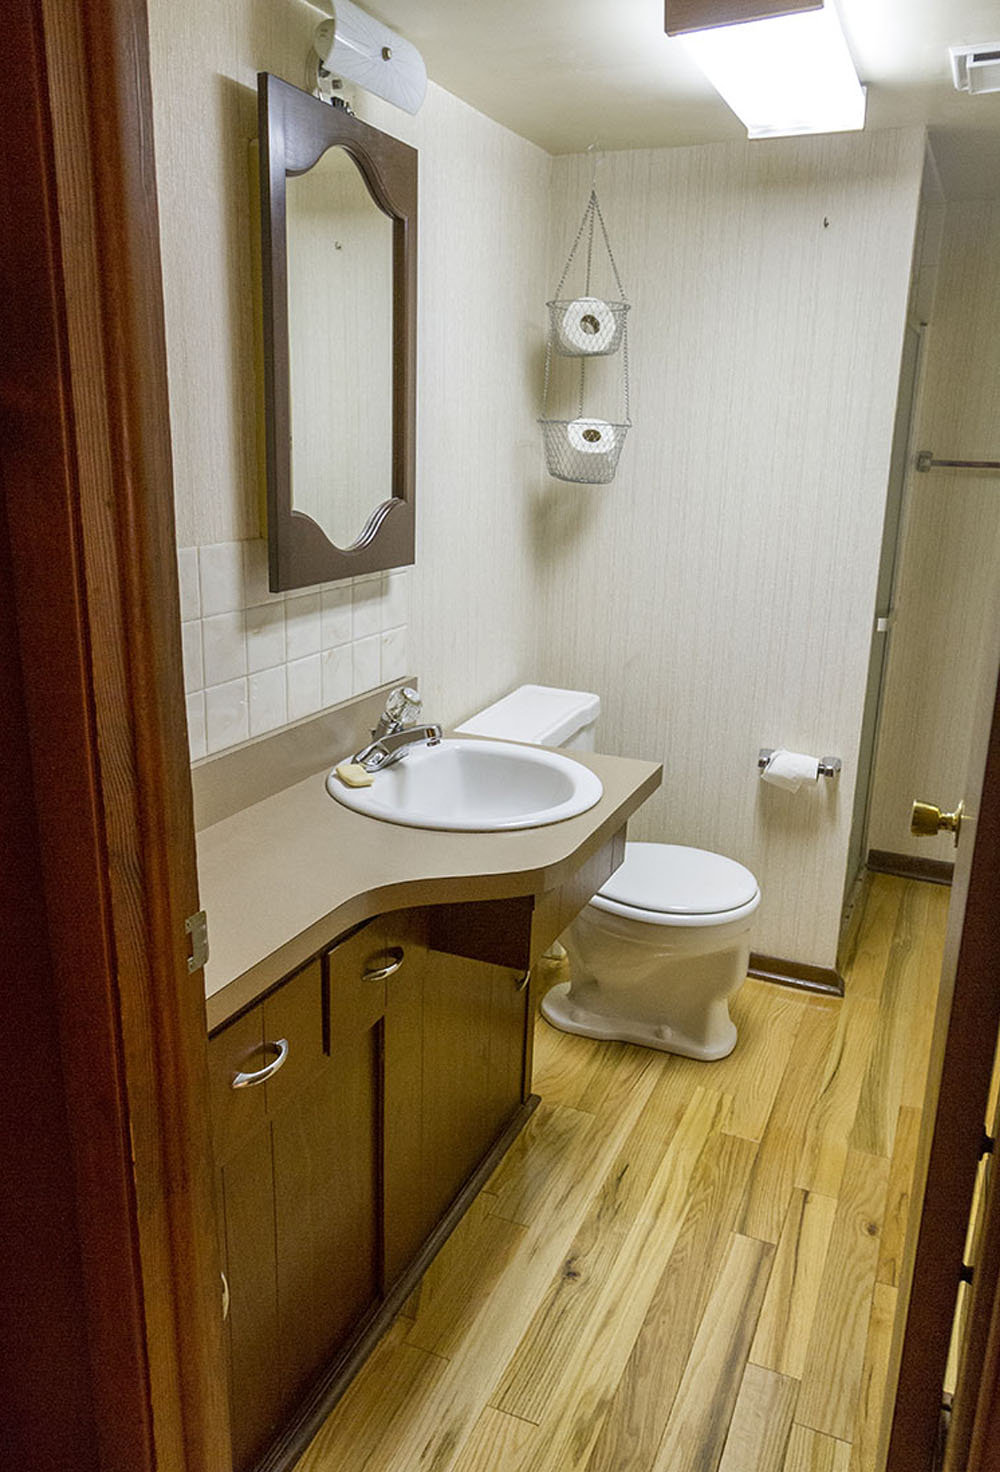 A bathroom with a brown vanity, white sink, white toilet, mirror and wood flooring.